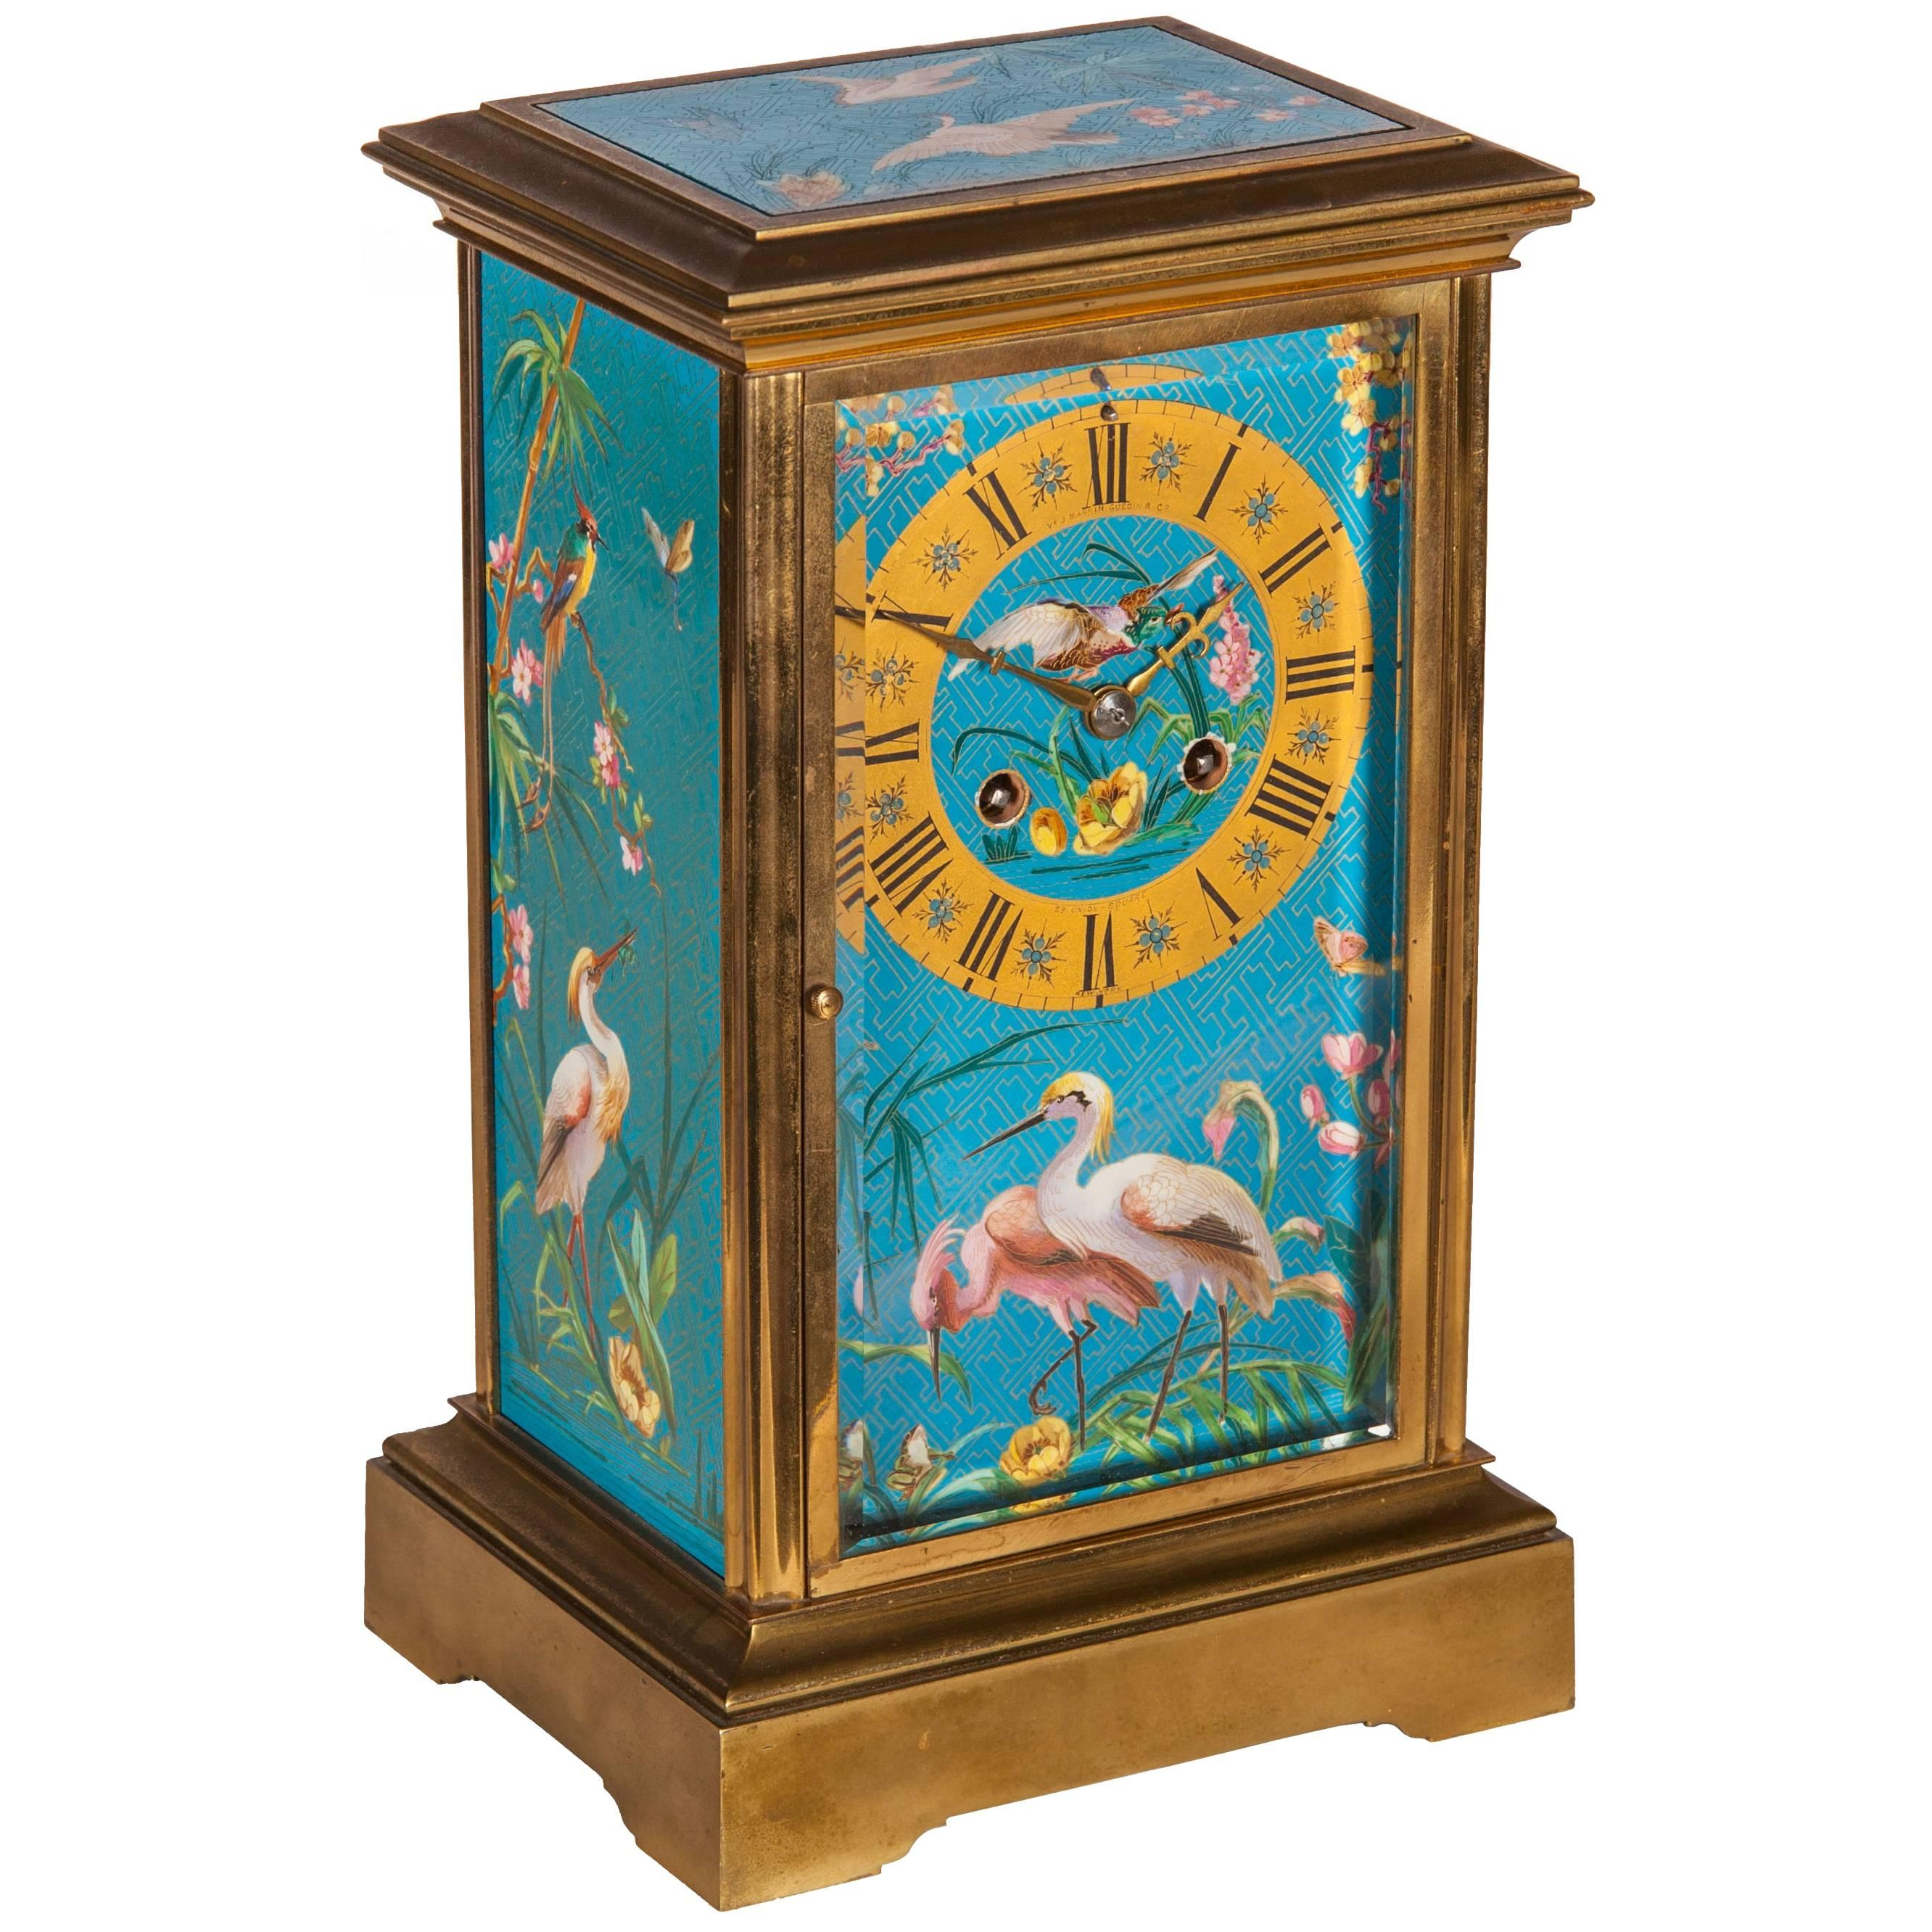 20th Century Alfred Dunhill Mantel Clock For Sale at 1stdibs